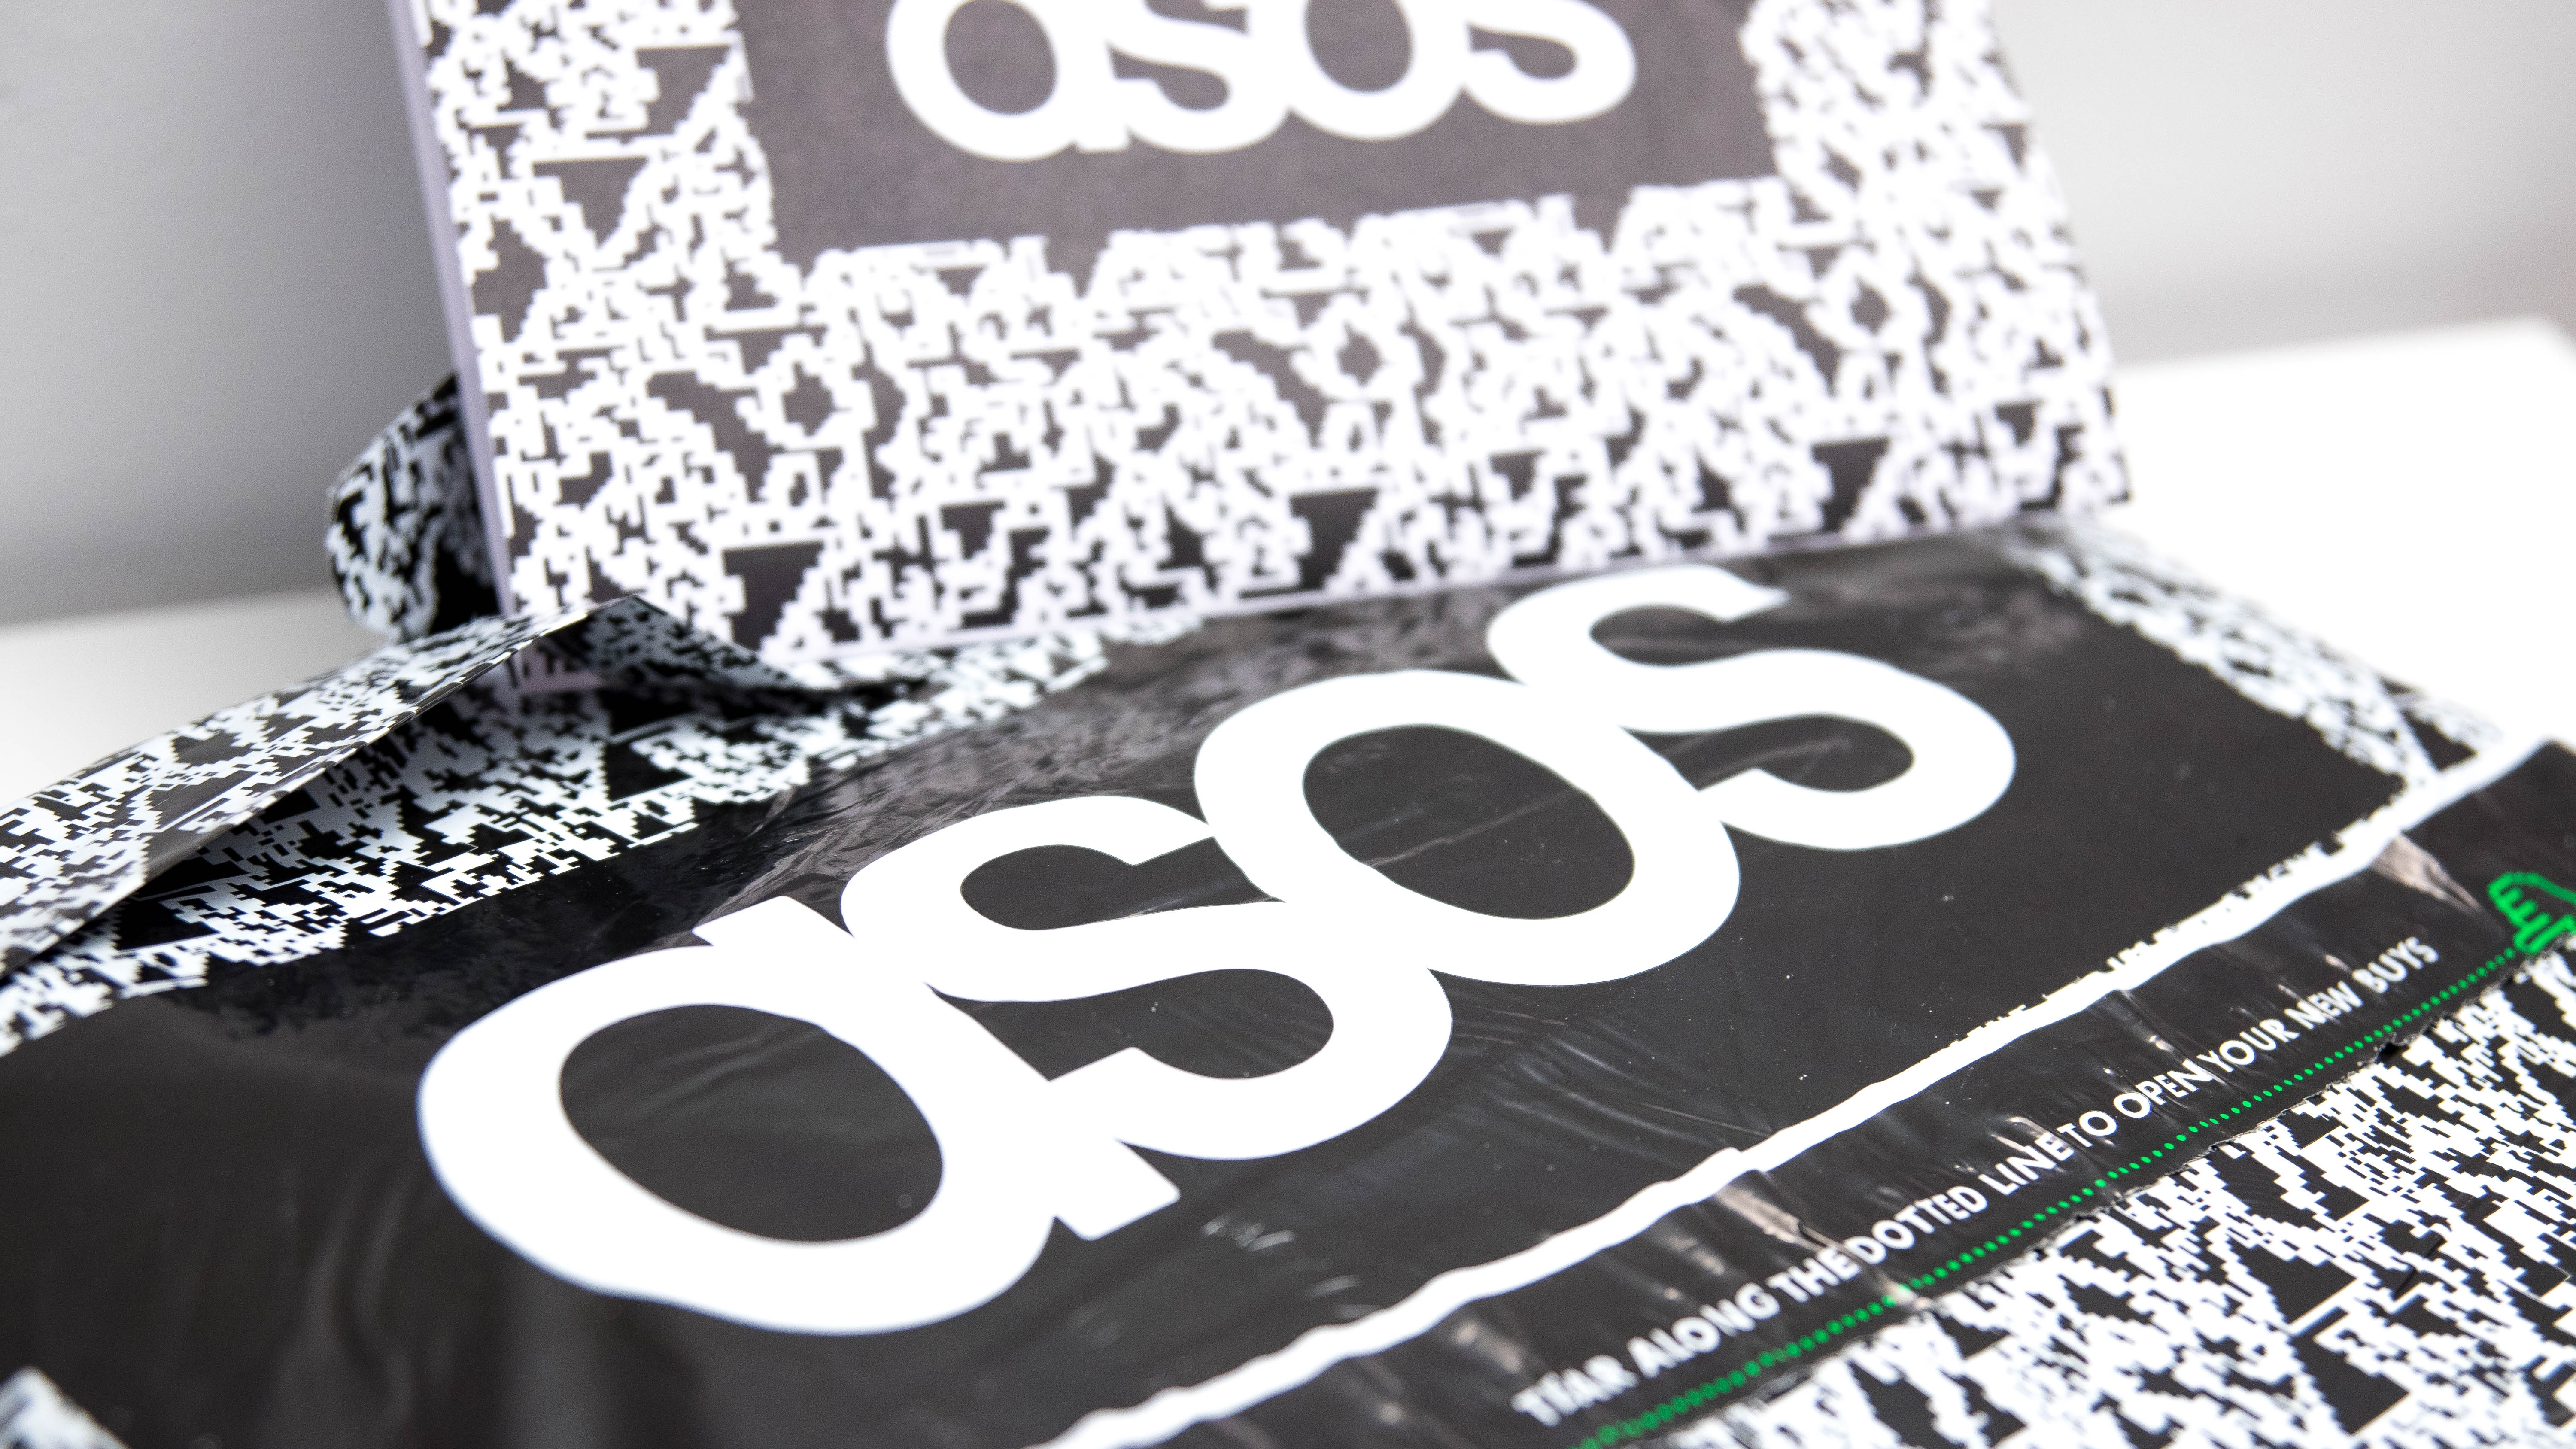 Asos cracking down on 'wear and return' customers – your rights